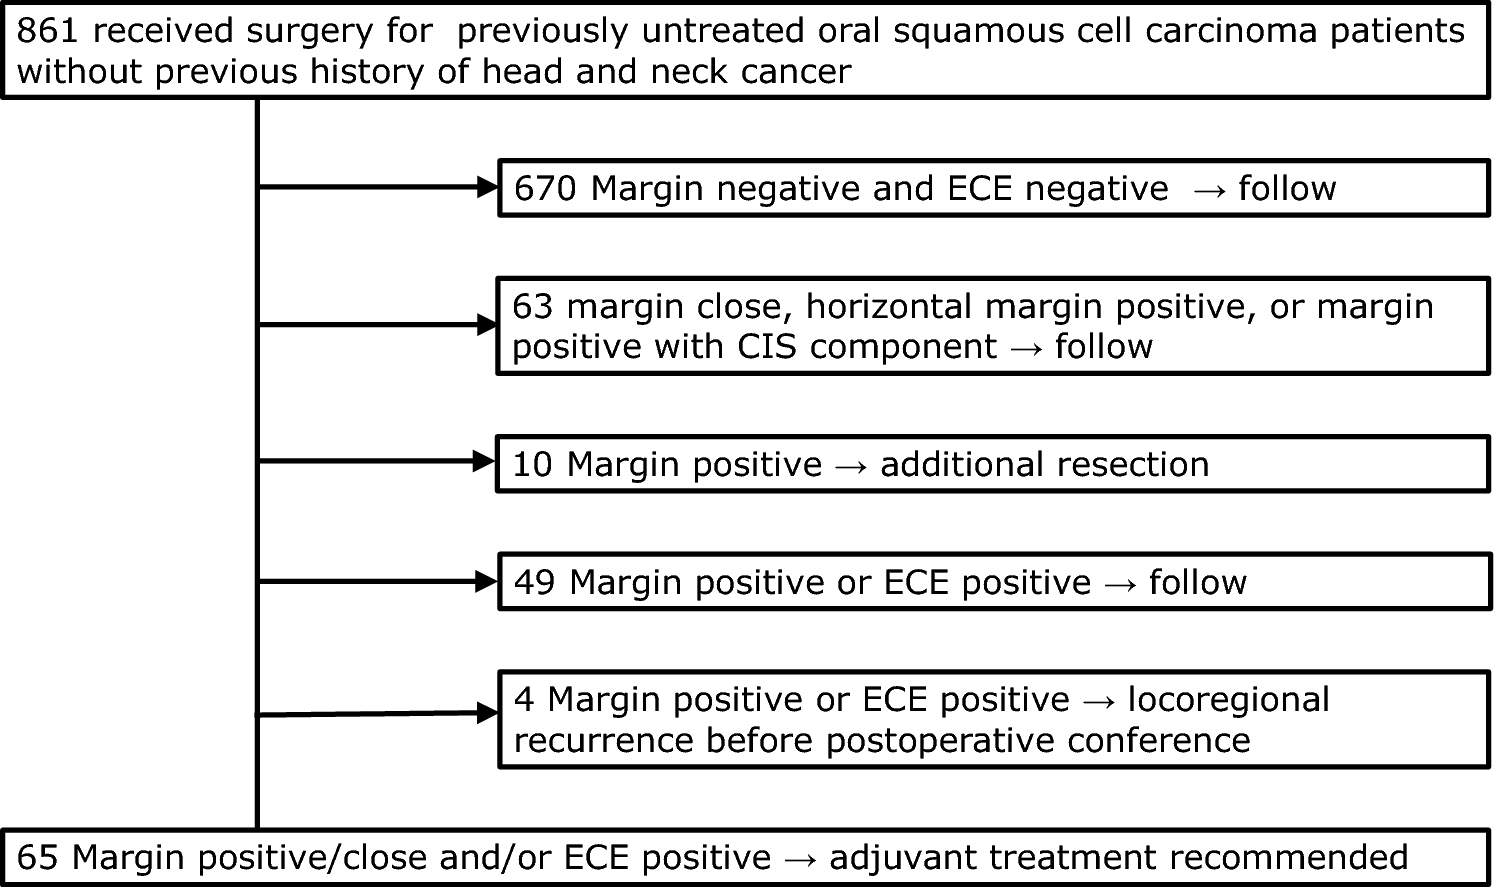 Frequency and predictors of detecting early locoregional